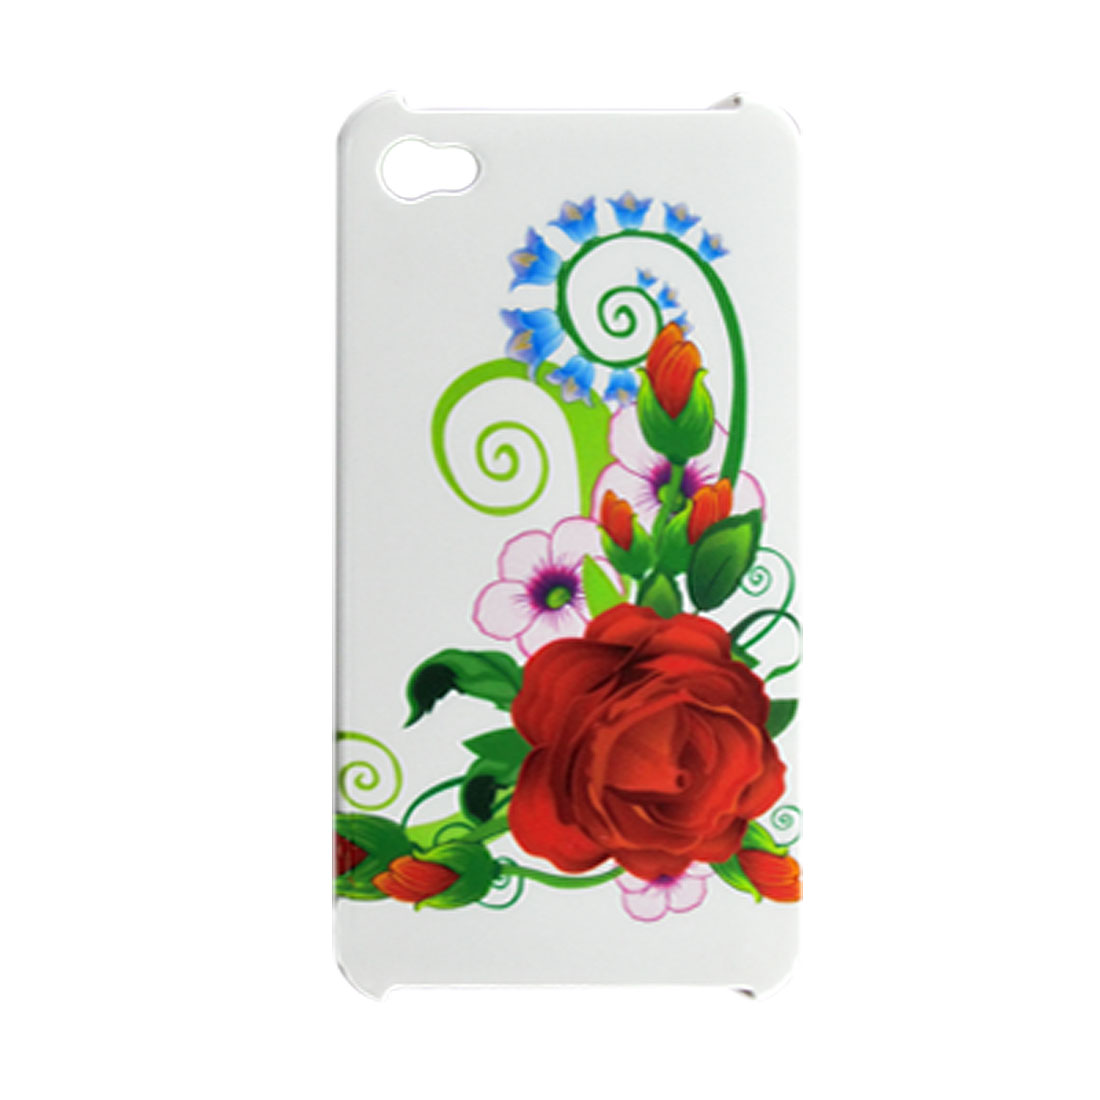 Car Chager + Colorful Floral Print Hard Back Cover for iPhone 4